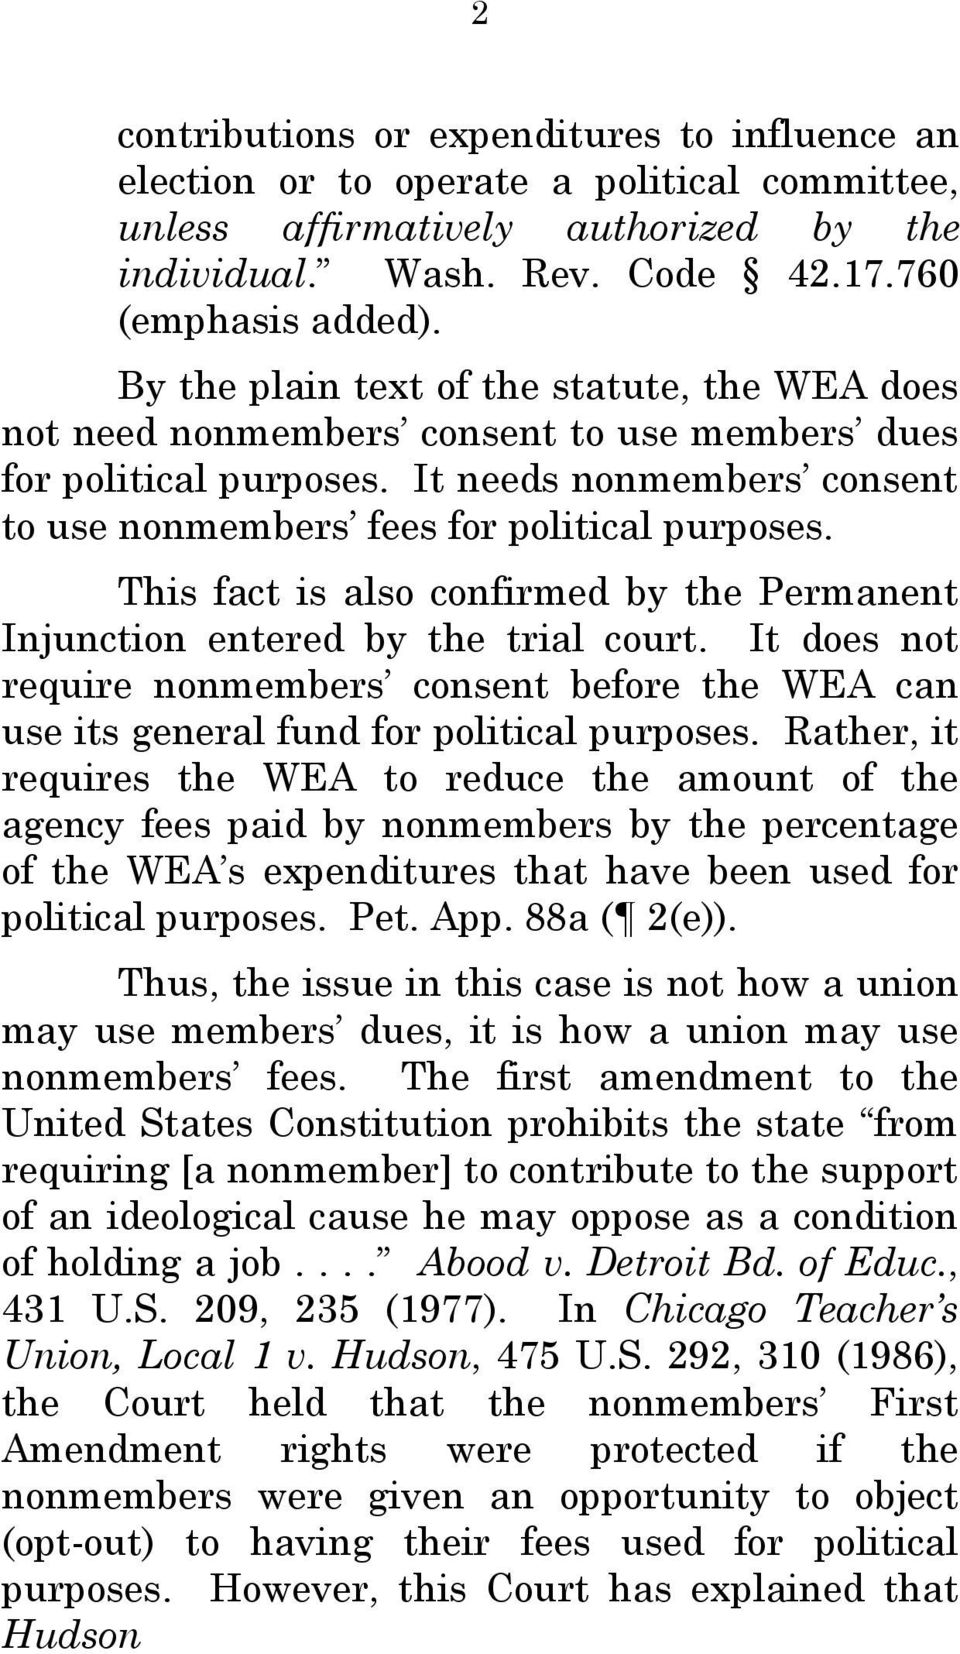 This fact is also confirmed by the Permanent Injunction entered by the trial court. It does not require nonmembers consent before the WEA can use its general fund for political purposes.